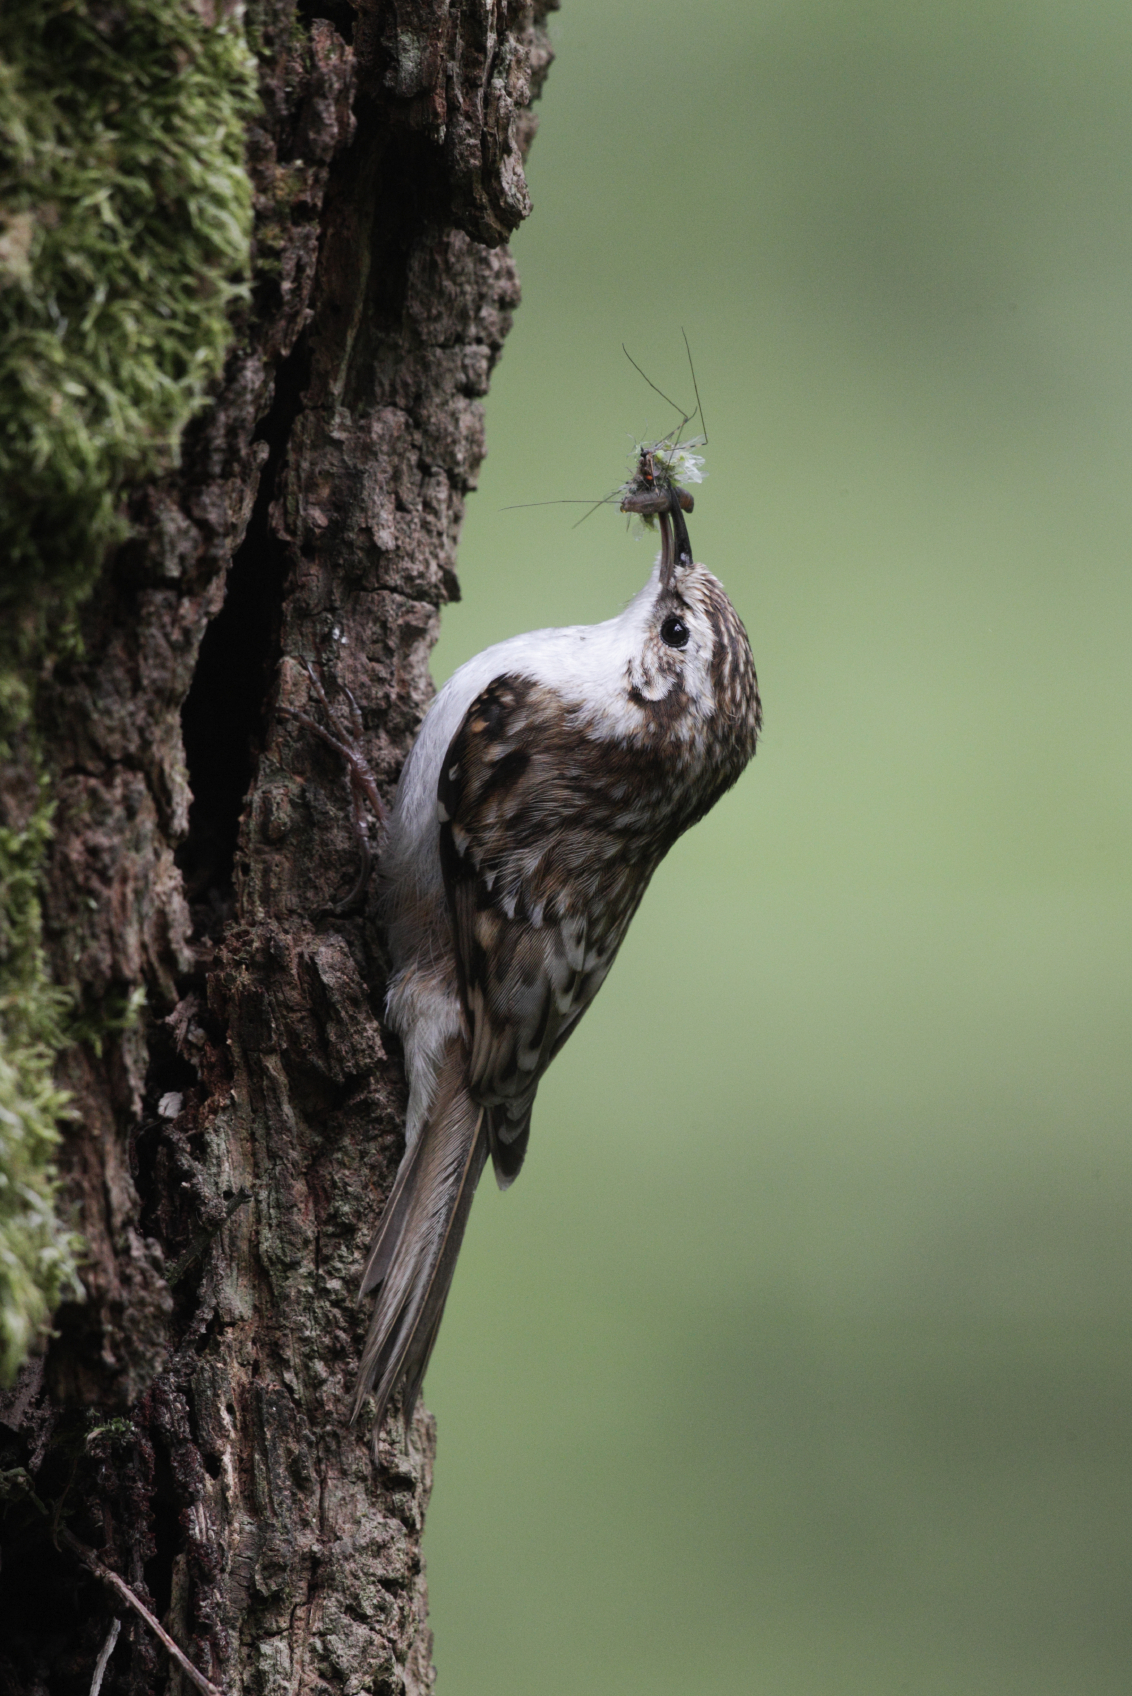 Treecreeper-taking-food-back-to-it's-nest. Birds-are-an-incredibly-important-part-of-Britain's-ecology.